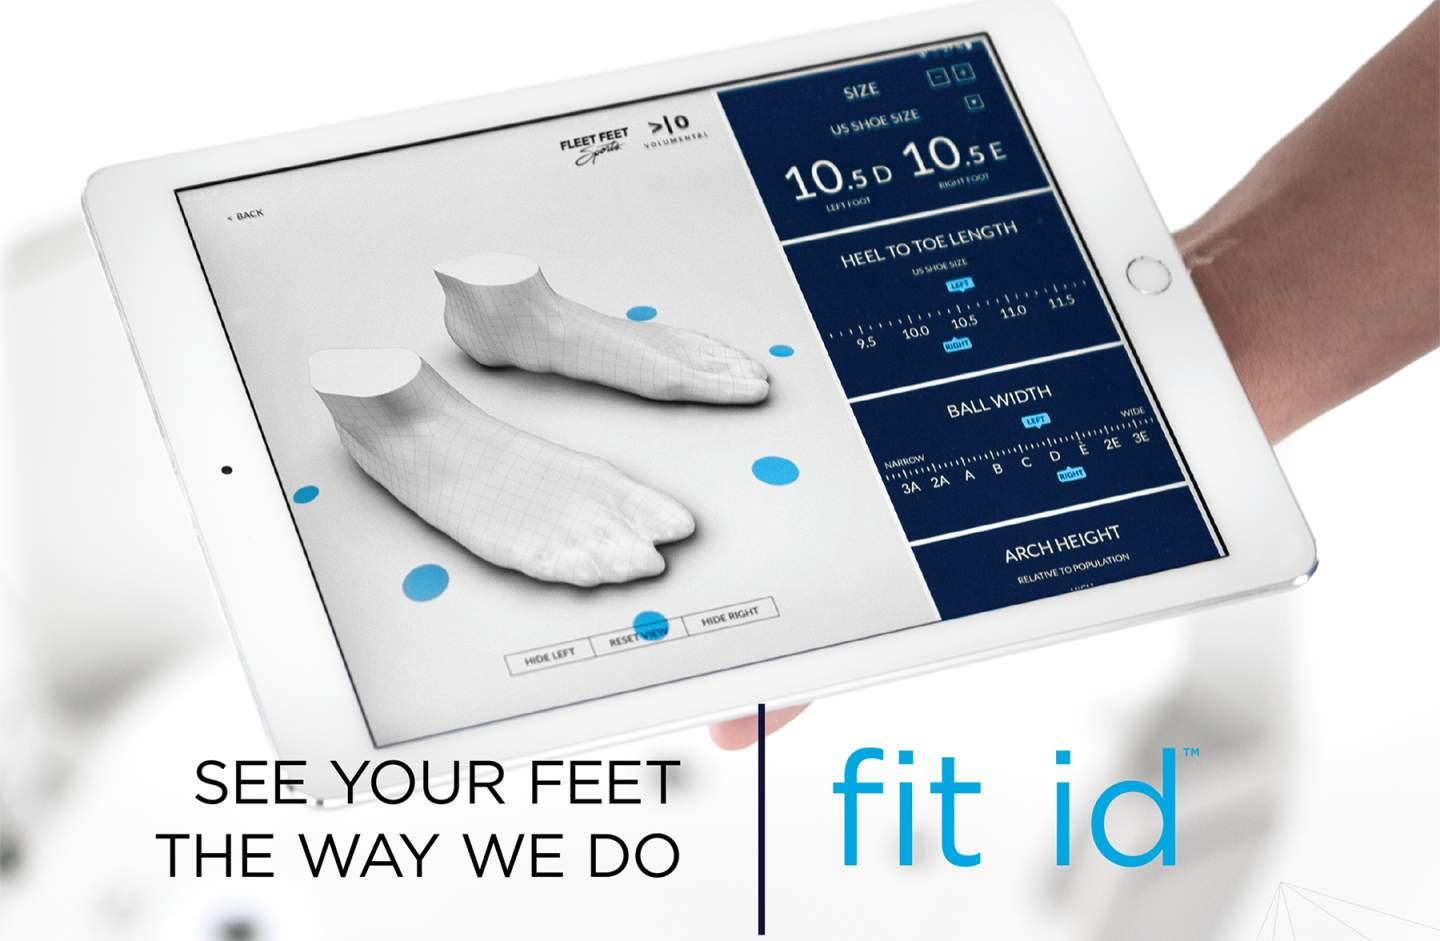 fit id - 3D scanning